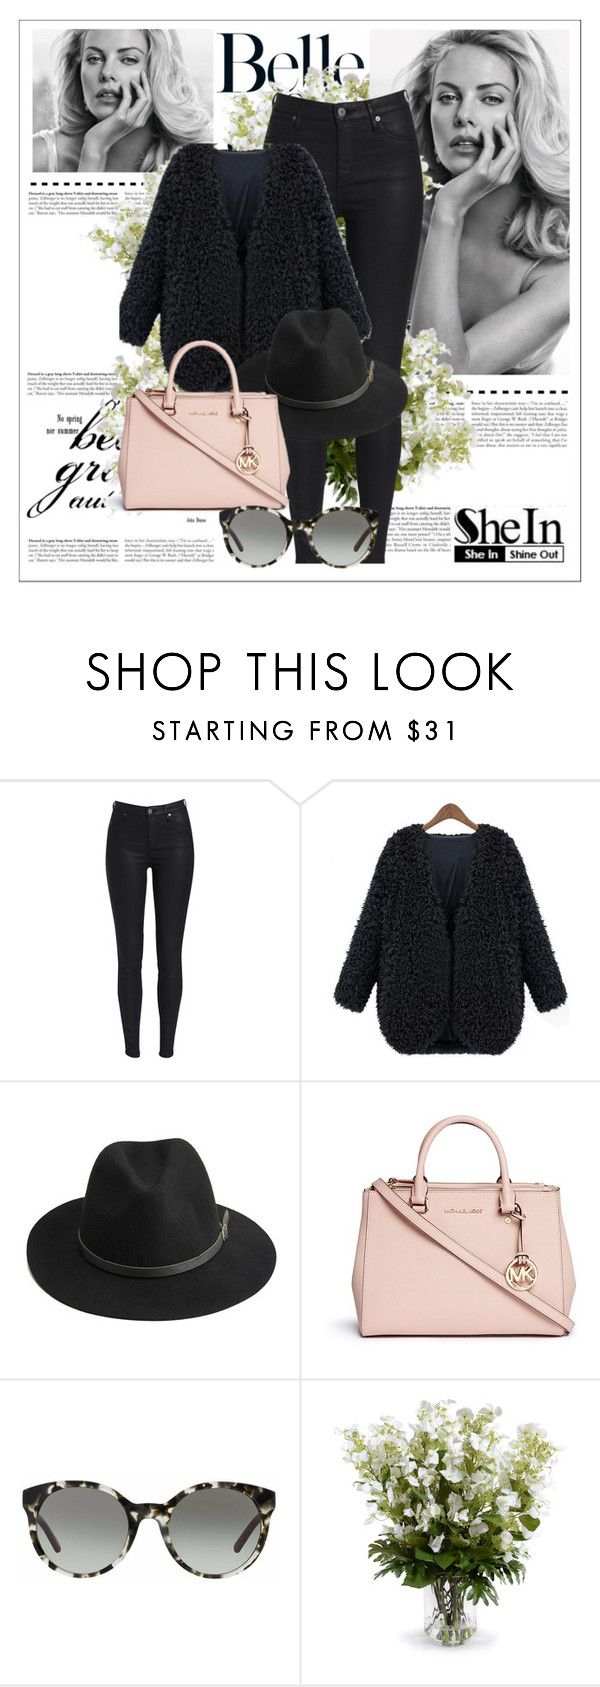 """Shein contest"" by dajana-miletic ❤ liked on Polyvore featuring BeckSöndergaard, Michael Kors, Tory Burch and New Growth Designs"